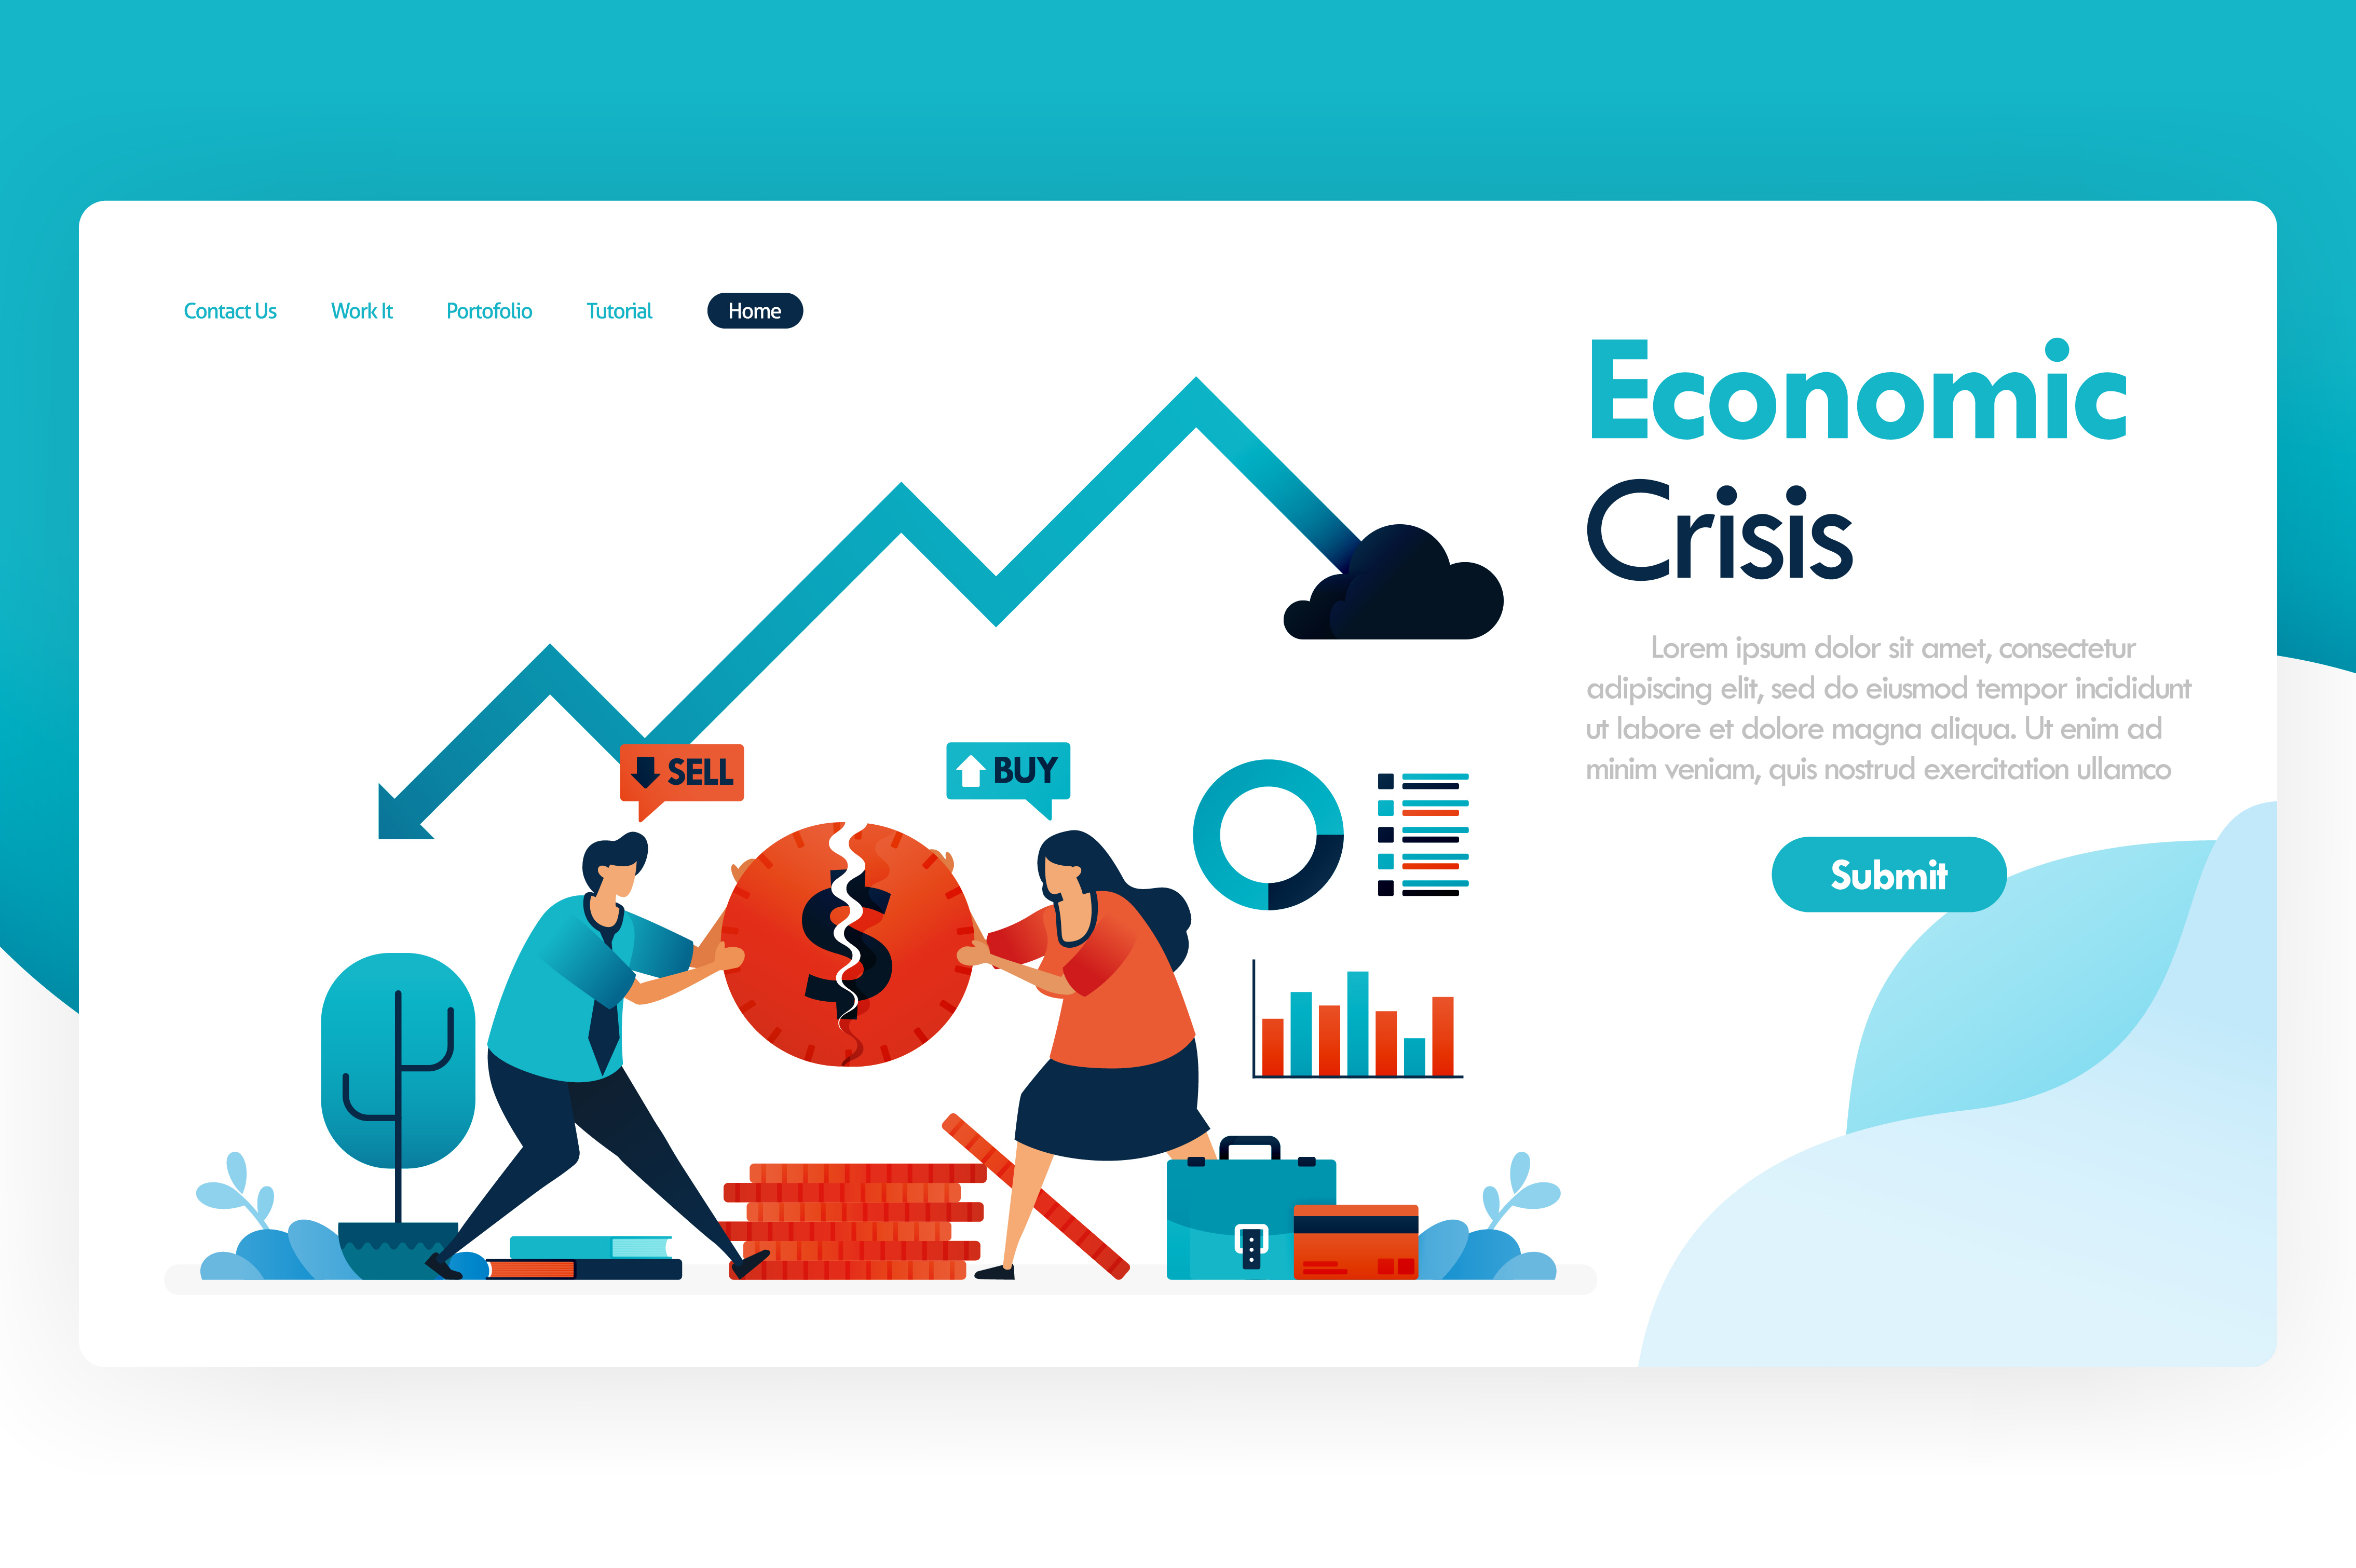 Download Free Economic Crisis With Falling Gdp Graphic By Setiawanarief111 for Cricut Explore, Silhouette and other cutting machines.